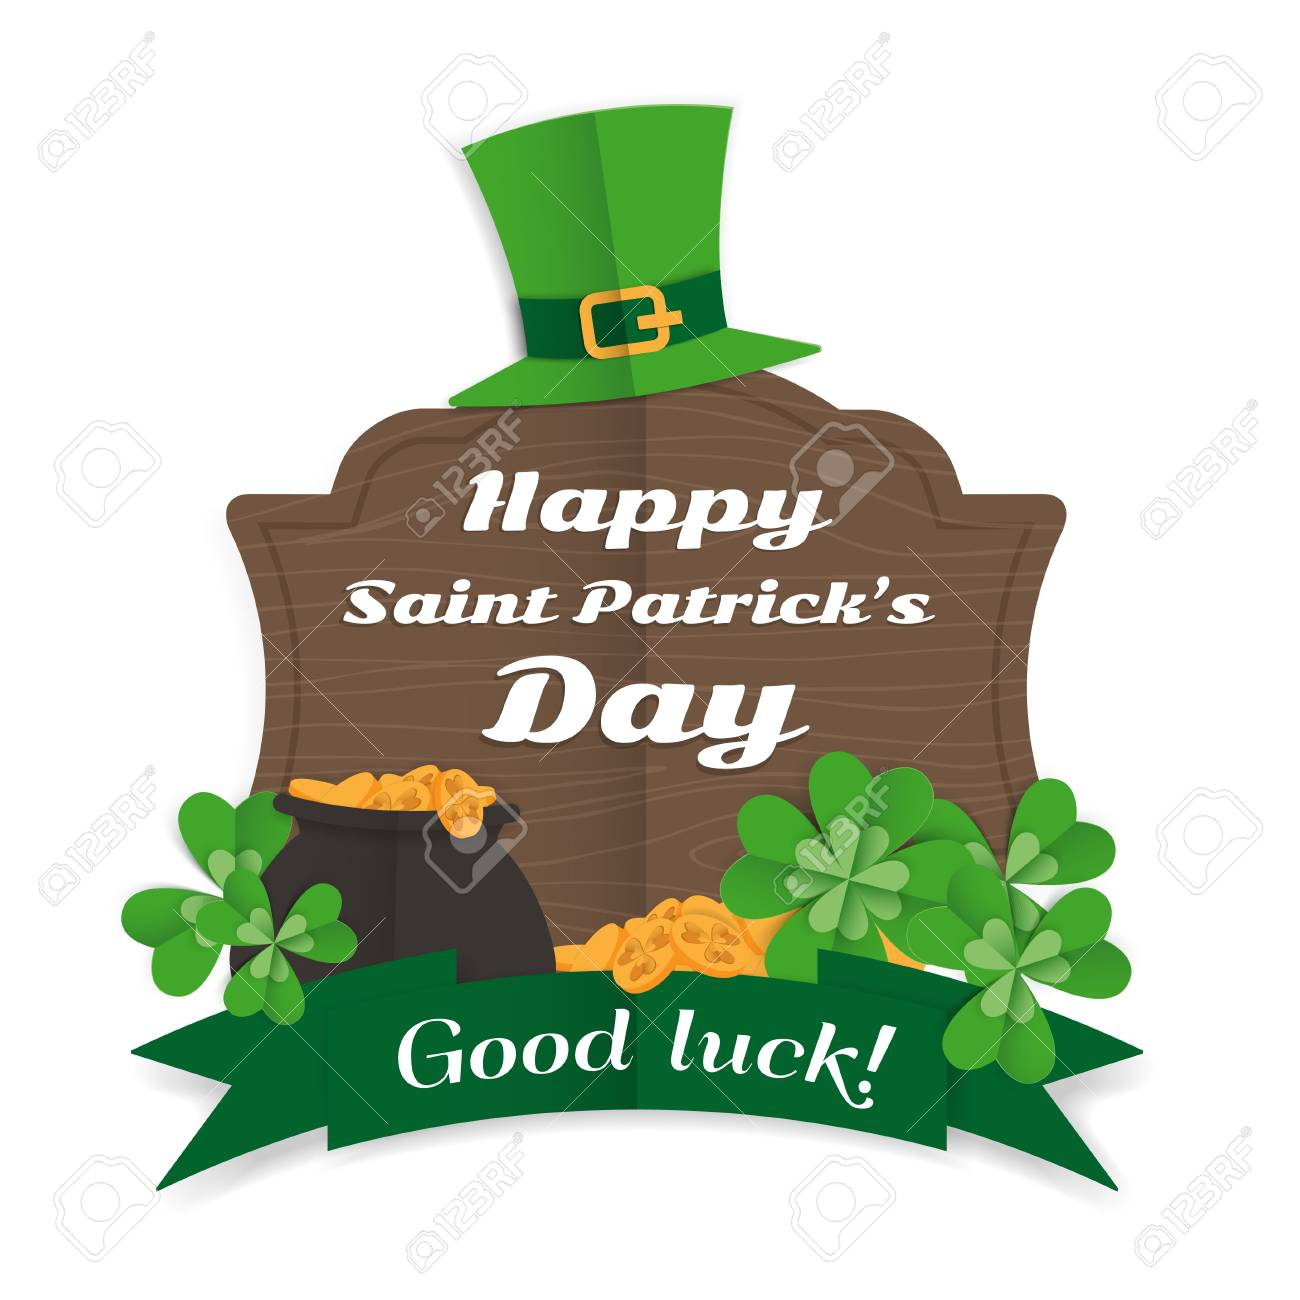 Festive Happy Saint Patricks Day Greeting Card With Wooden Sign